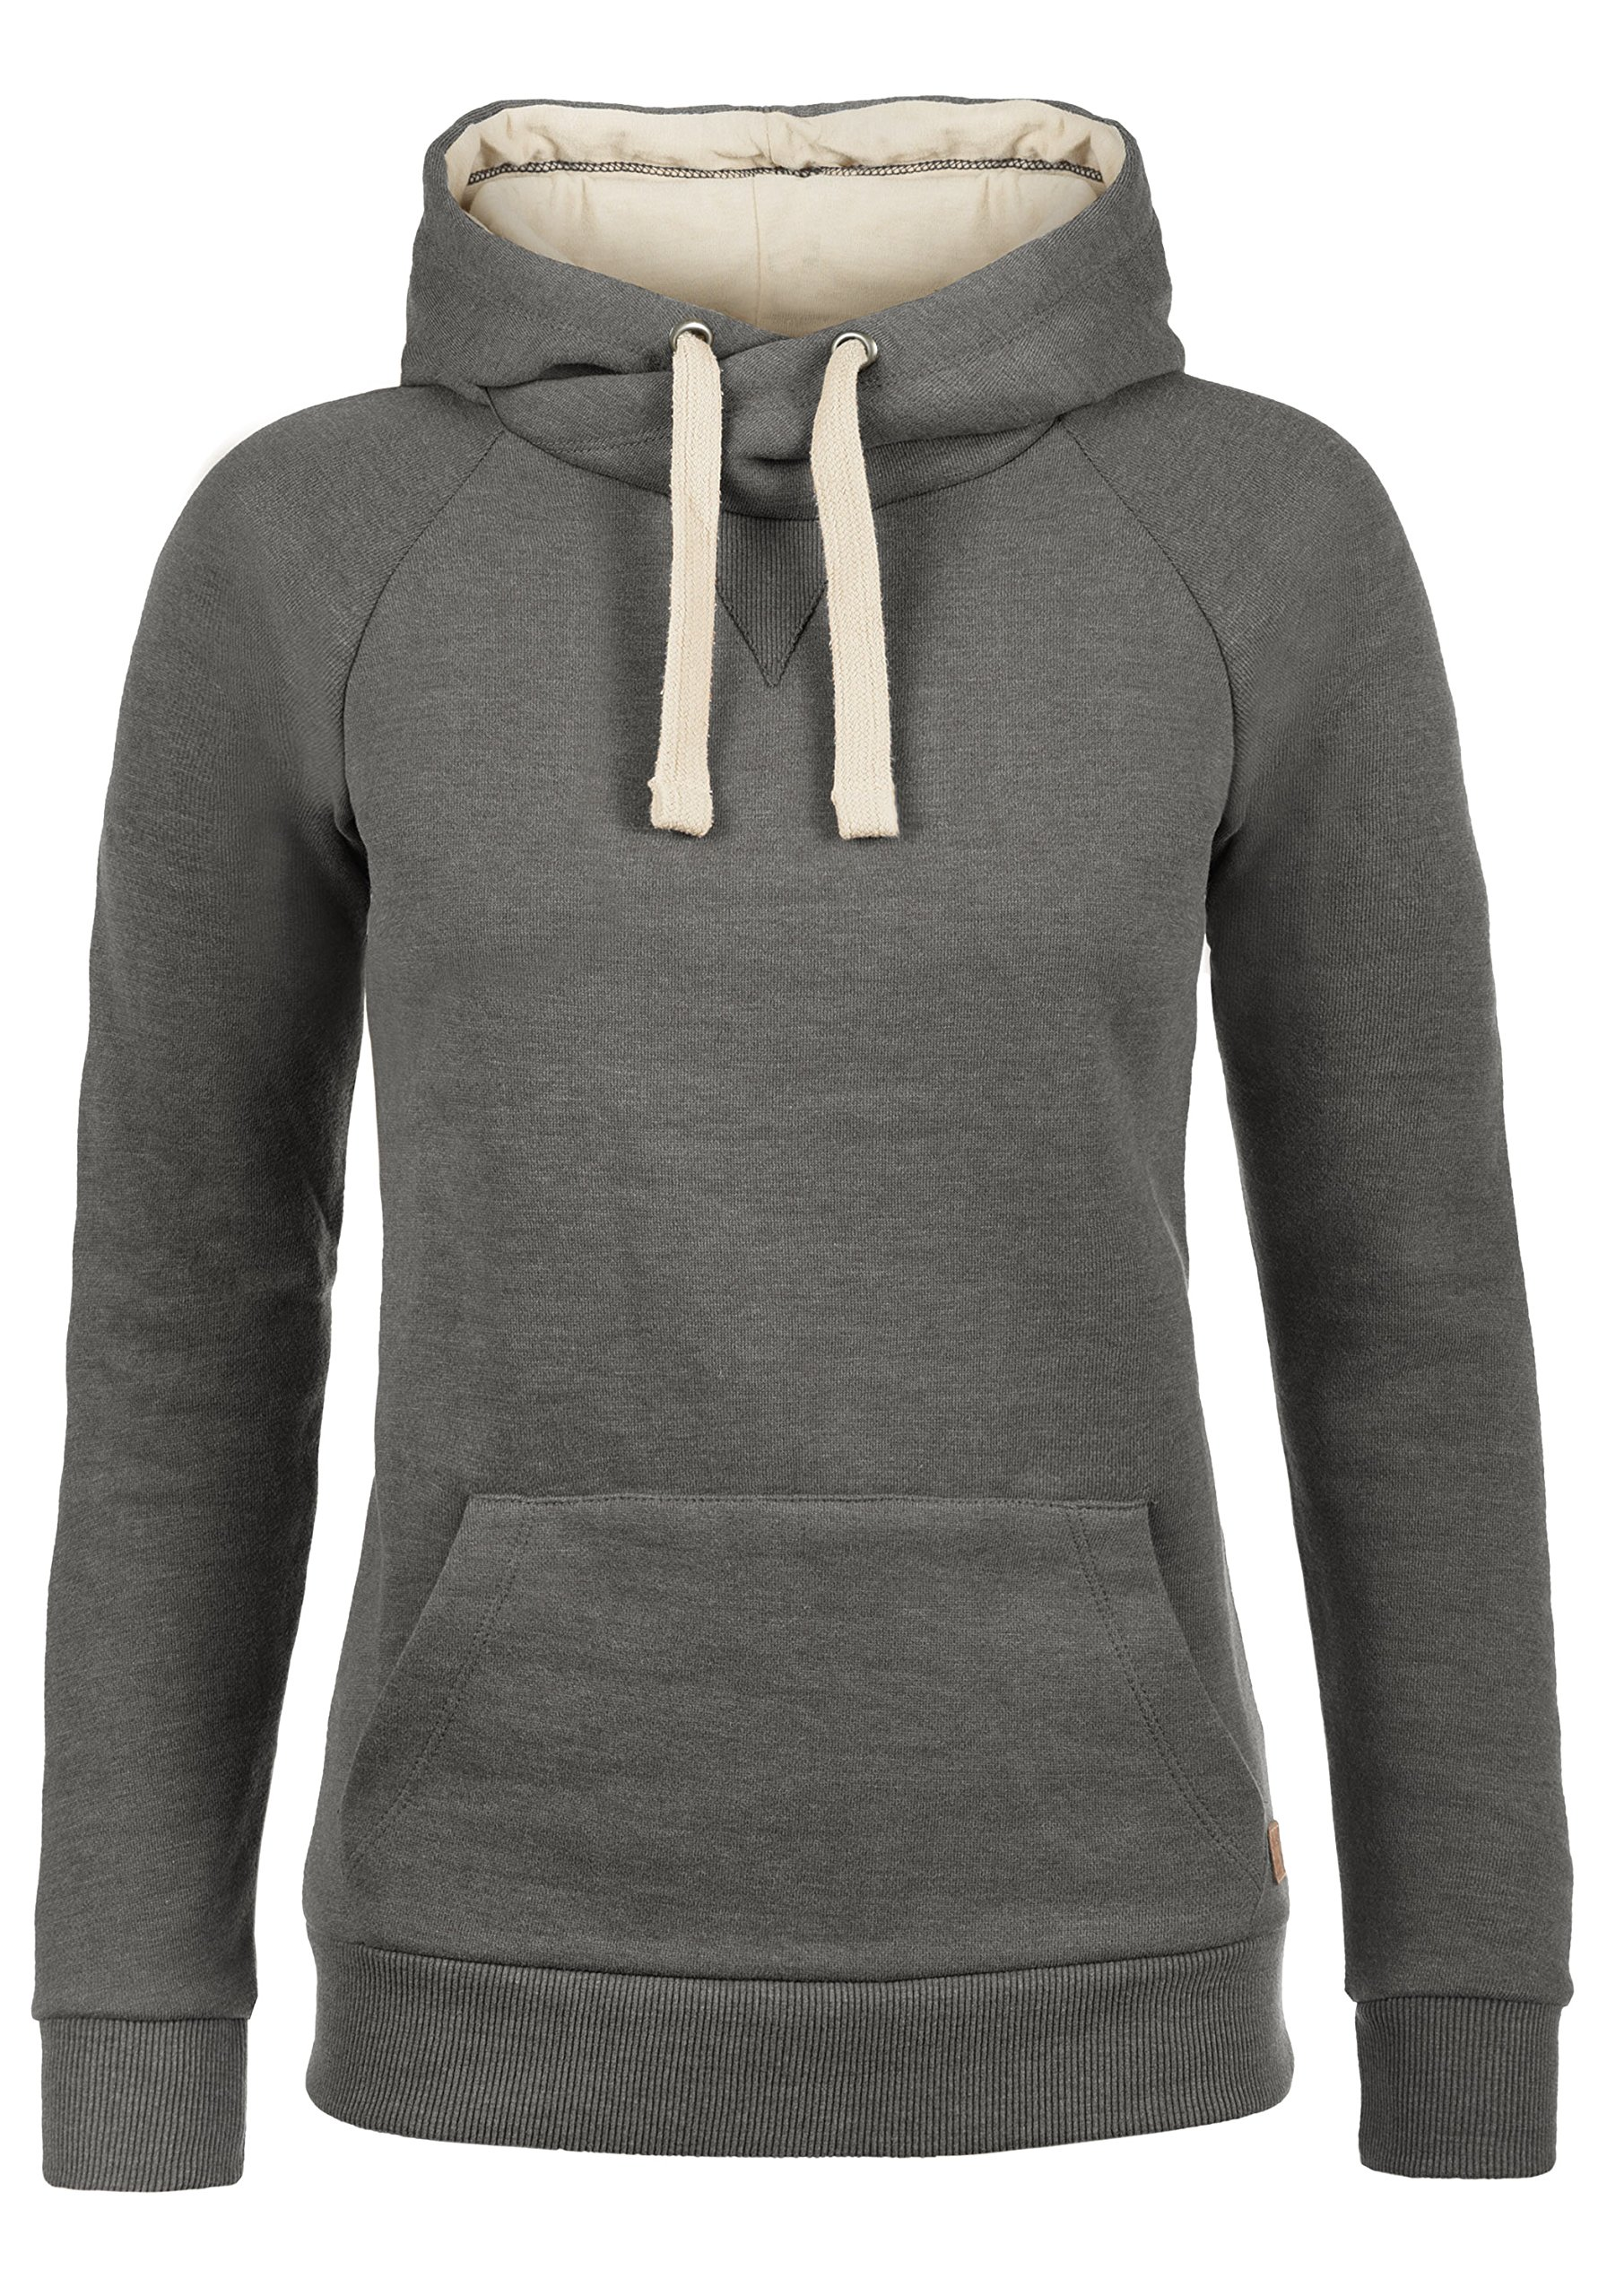 e3a2aa3bfb526 BlendShe Julia Sudadera con Capucha Suéter Hoodie para Mujer con Capucha  product image